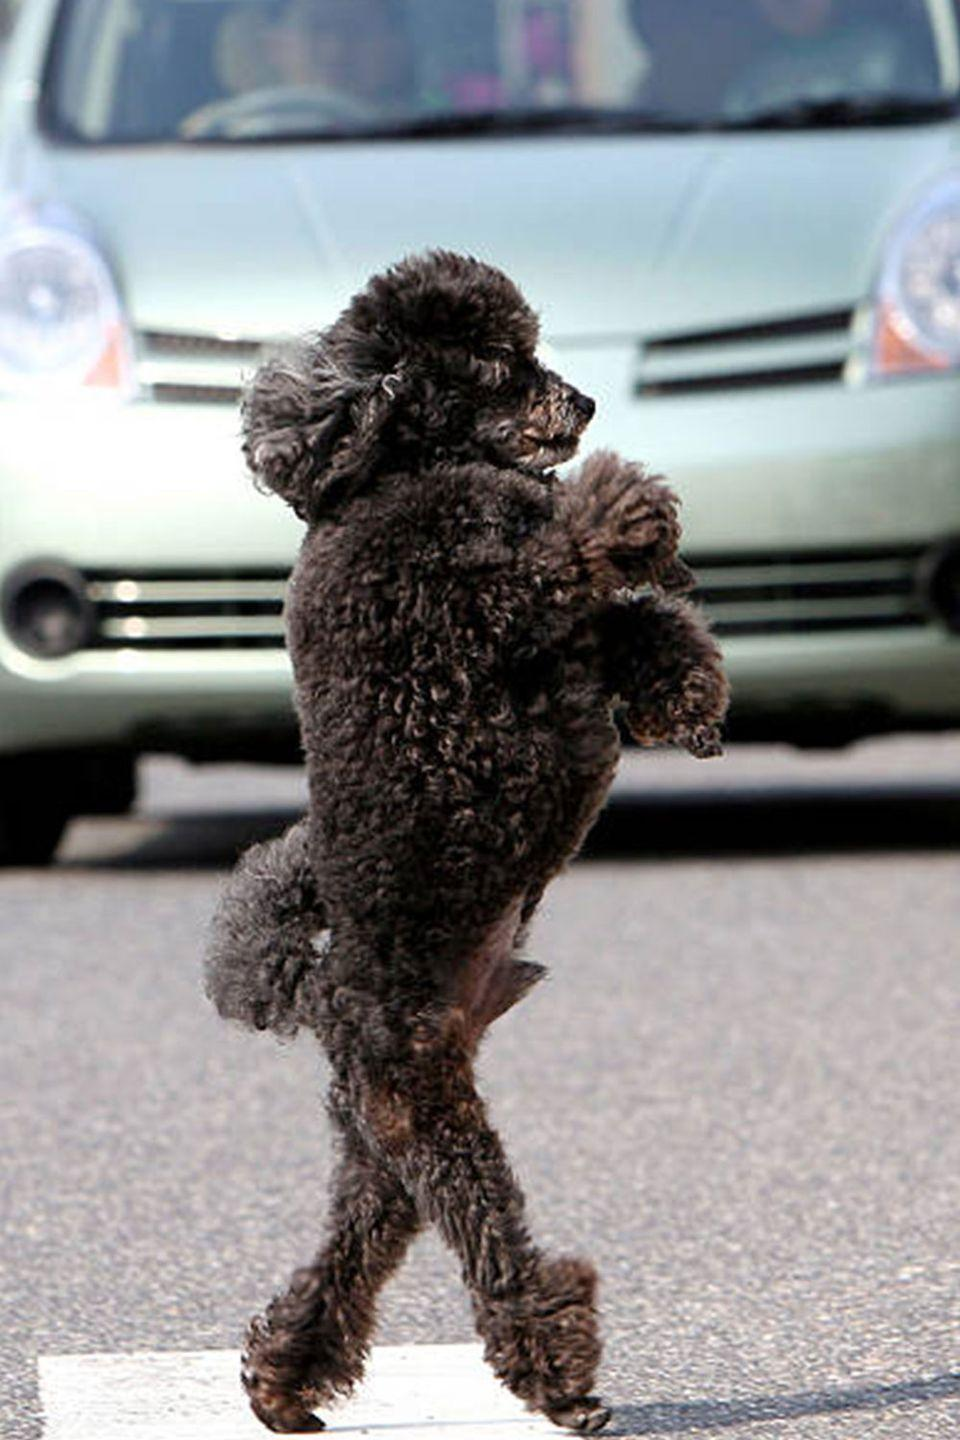 """<p>Walking down the street with that """"fresh from the groomer"""" swagger.</p>"""